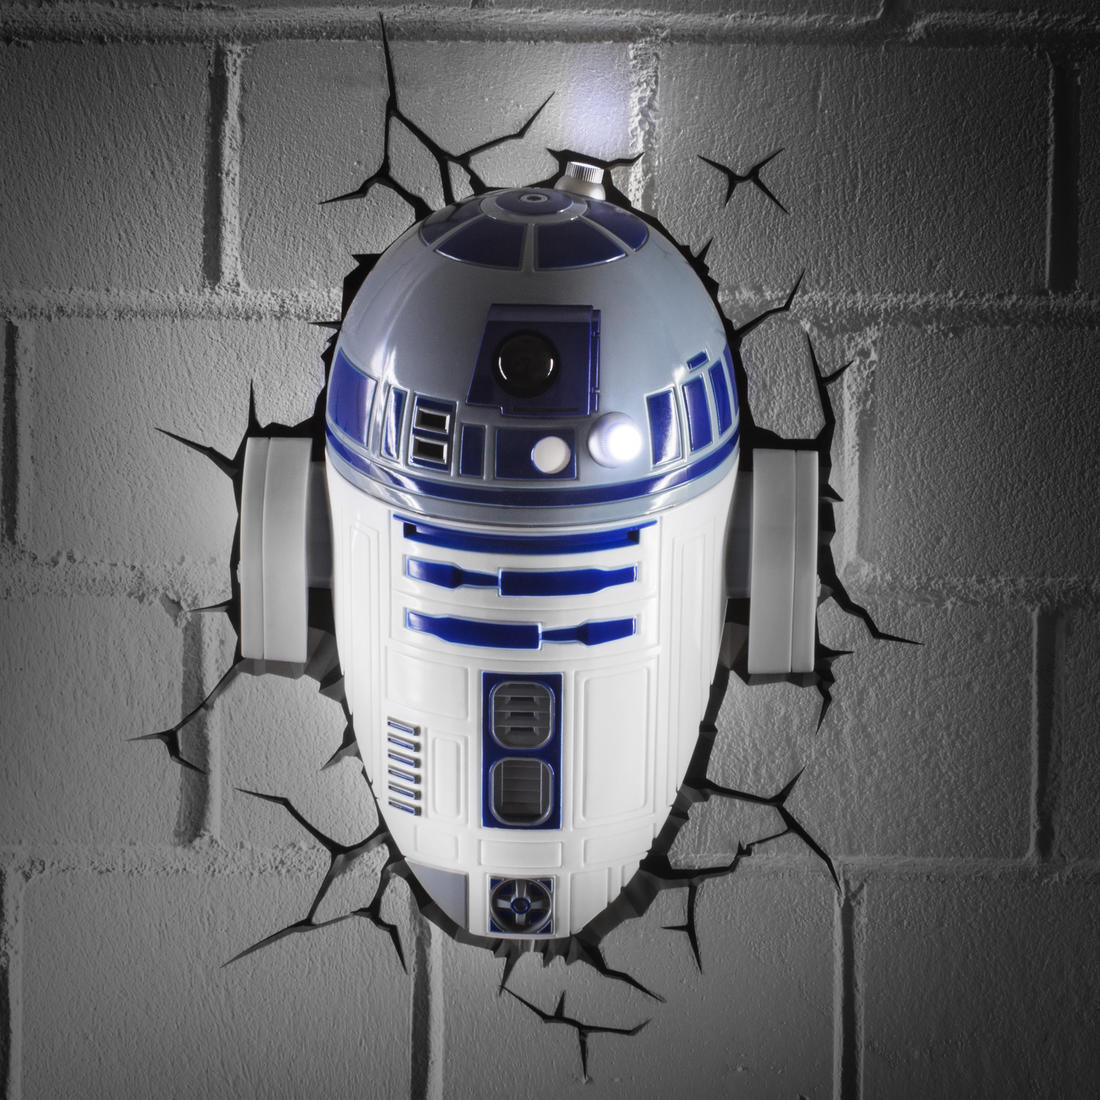 Star wars 3d led wandlampen ab 34 online kaufen 12 2016 for Lampen 3d modelle